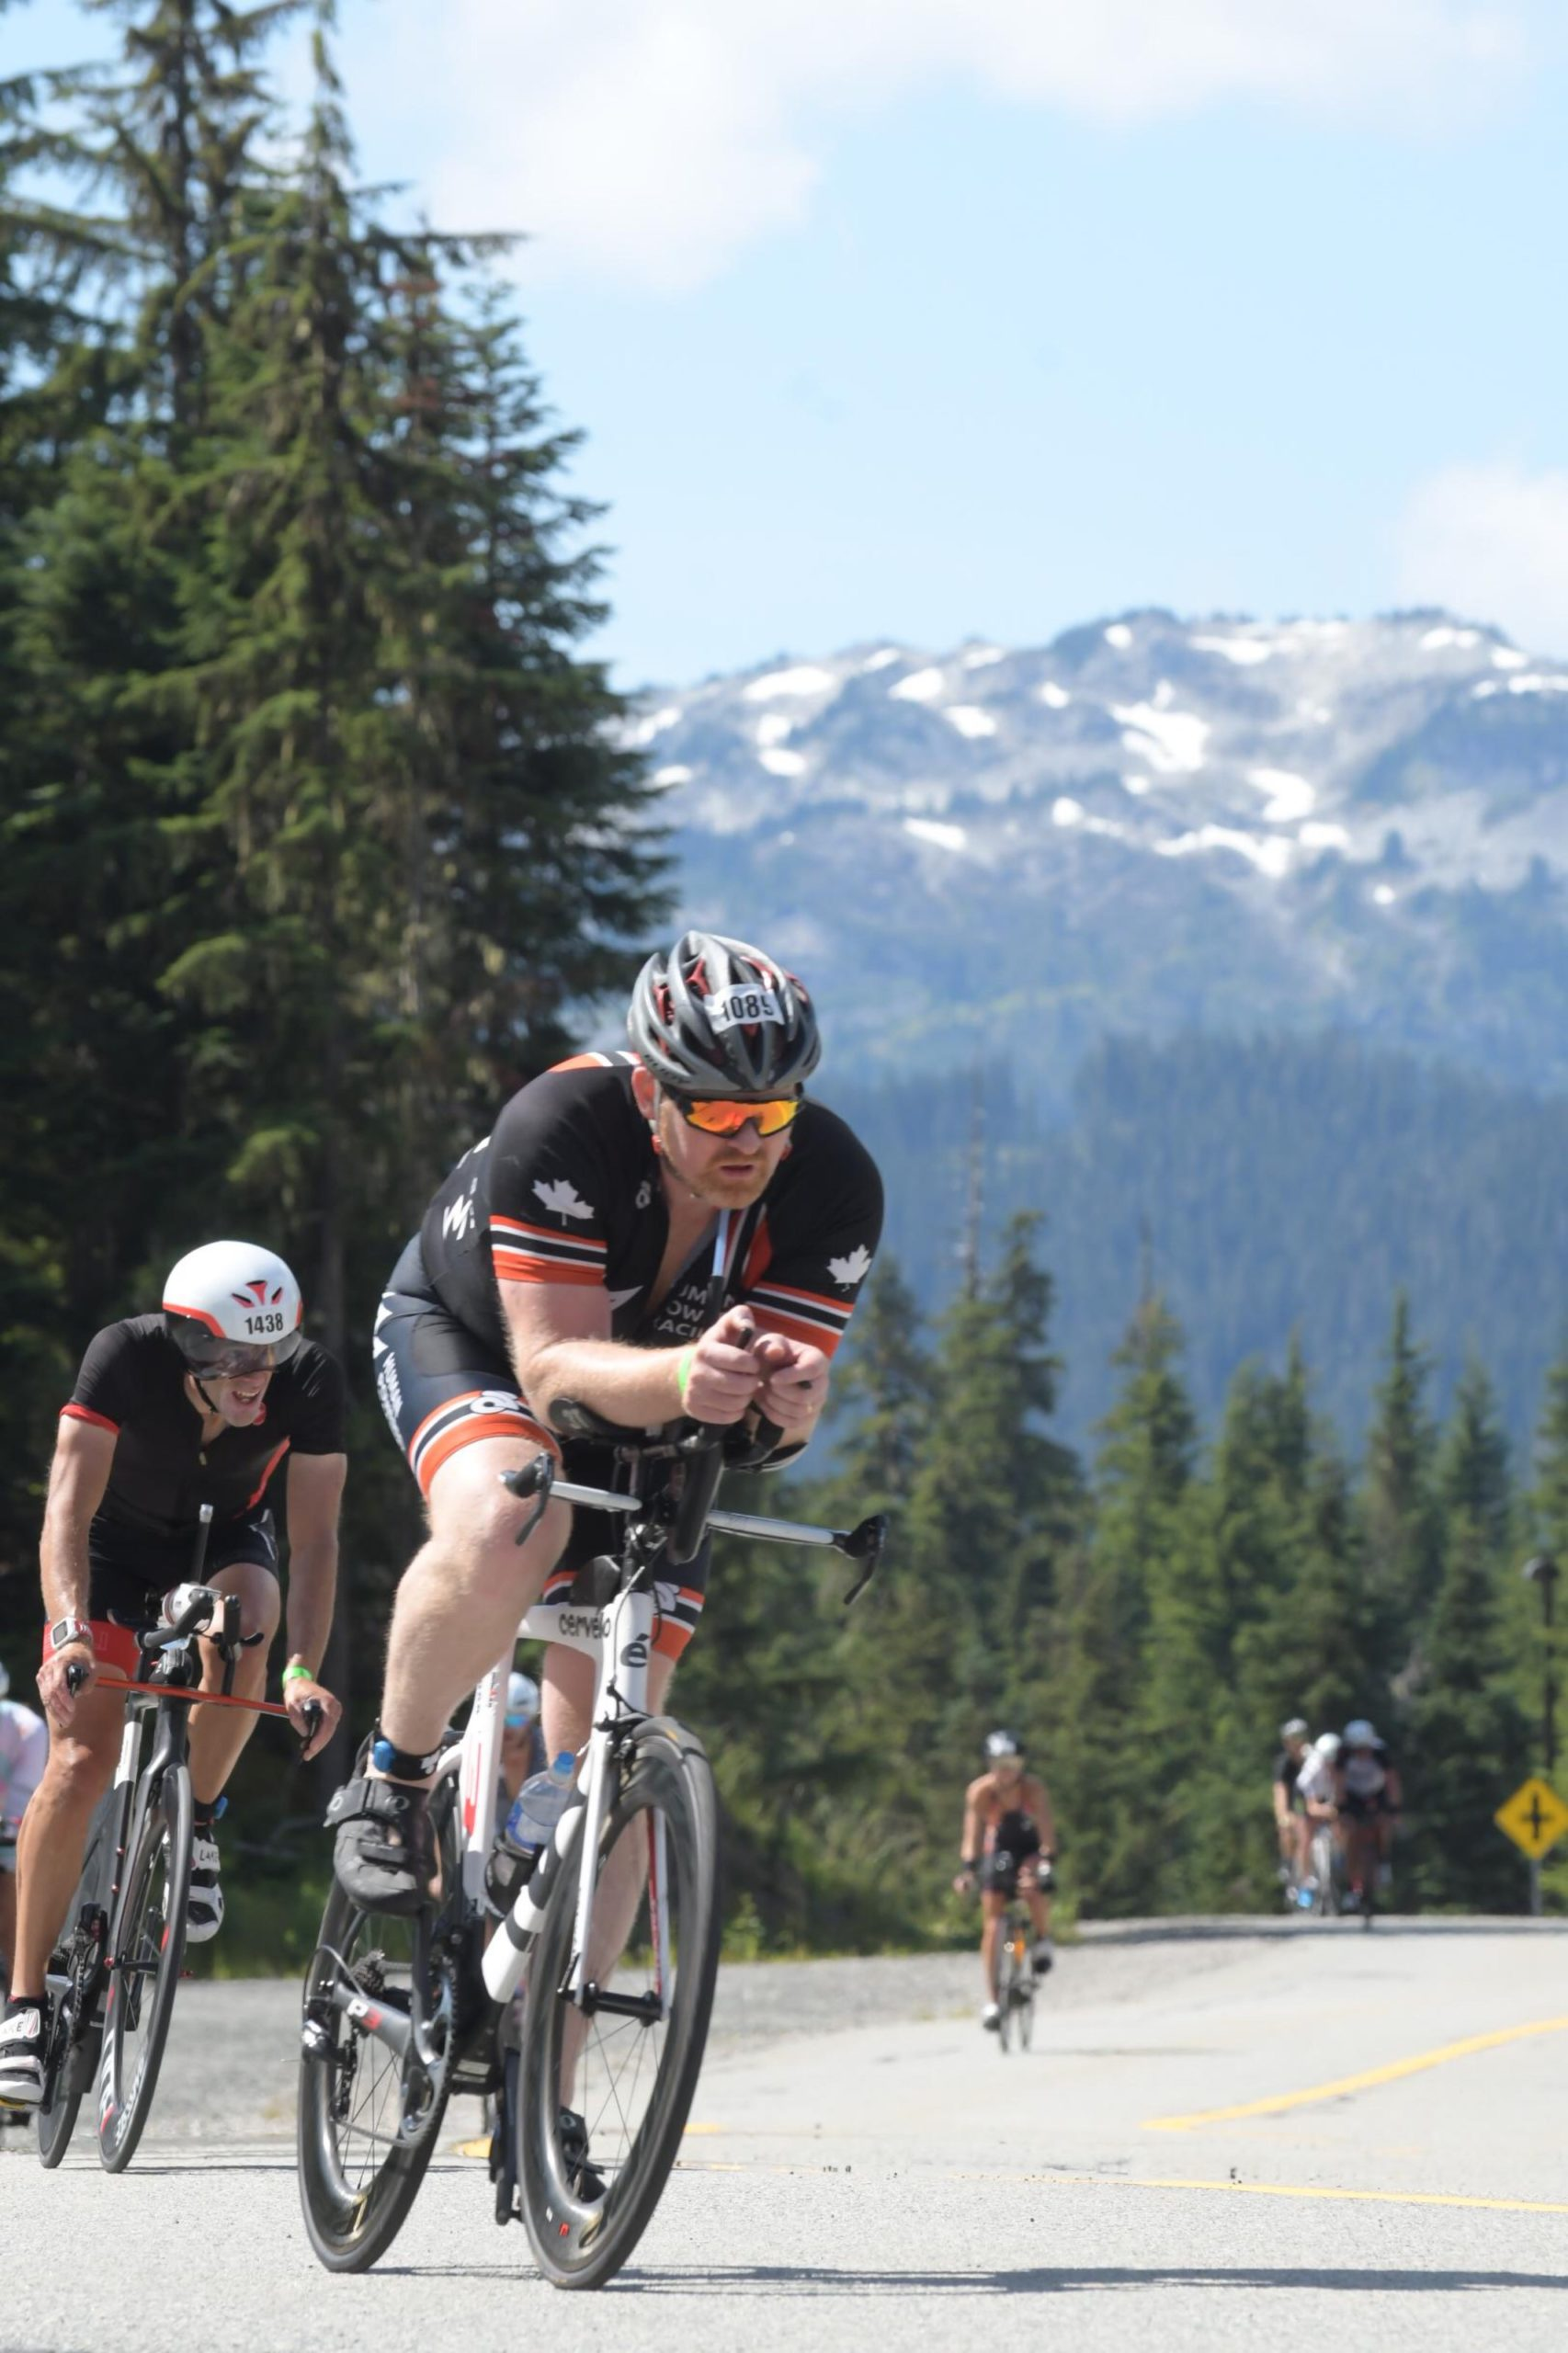 Mark Hopkins on the bike at Ironman Canada in Whistler 2019